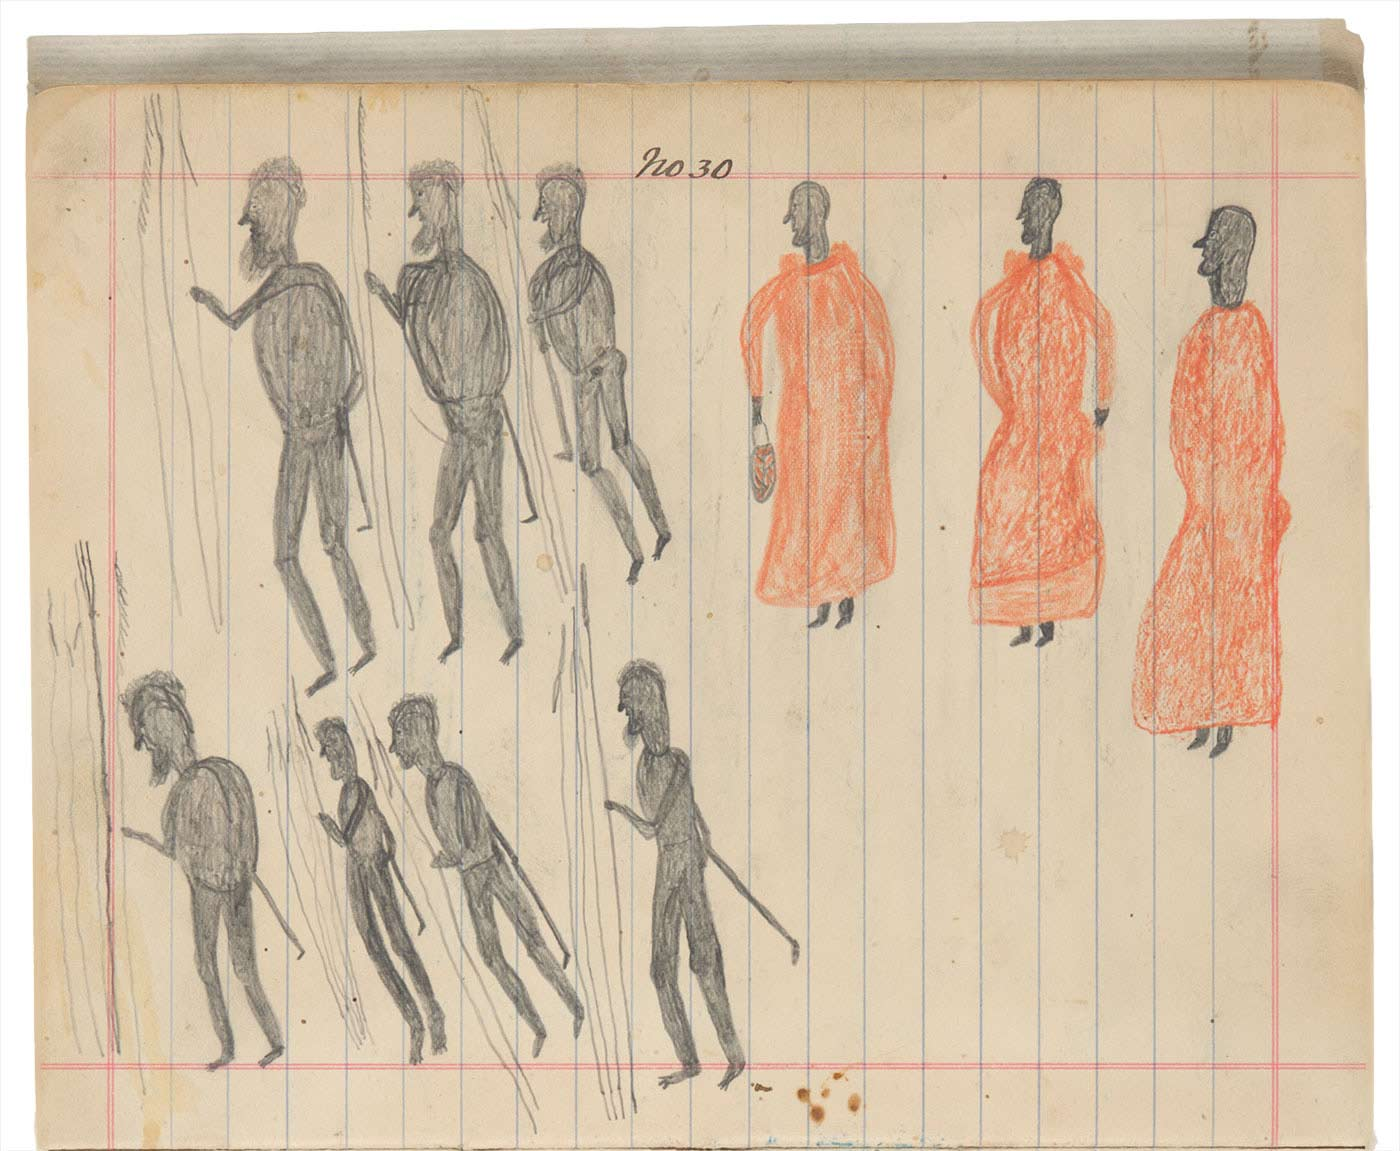 Sketchbook drawing of seven Indigenous people and three men in orange robes - click to view larger image